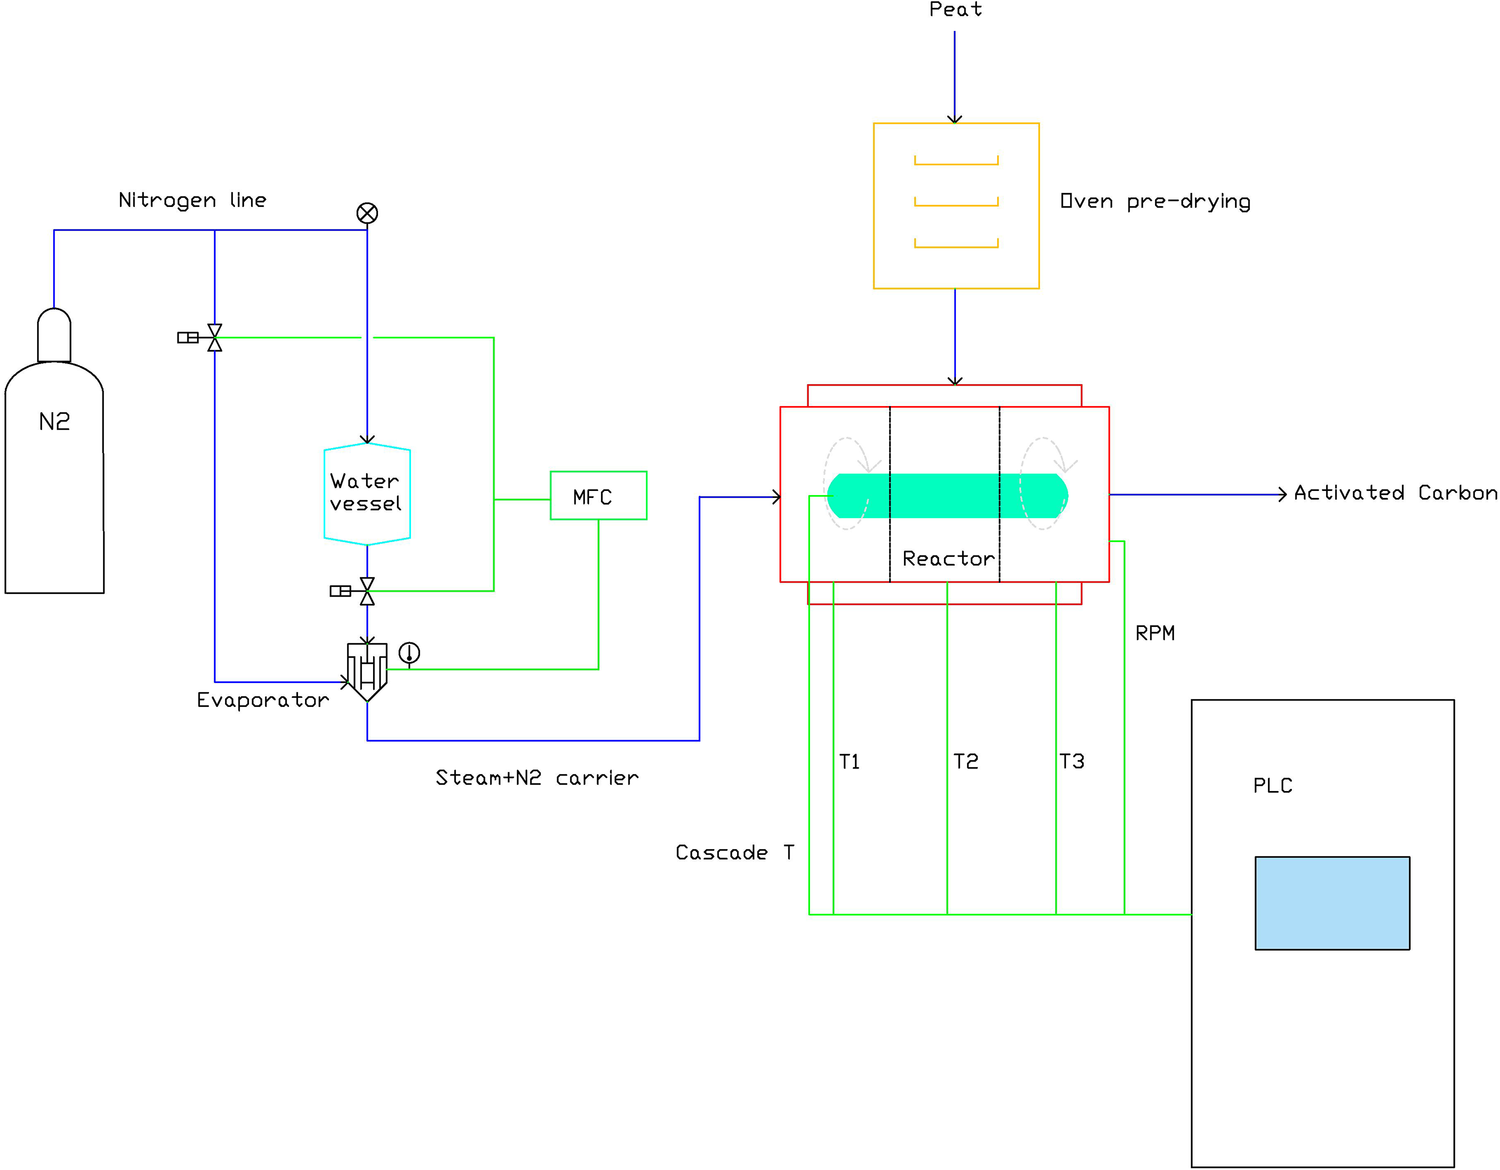 Effect of Some Process Parameters on the Main Properties of